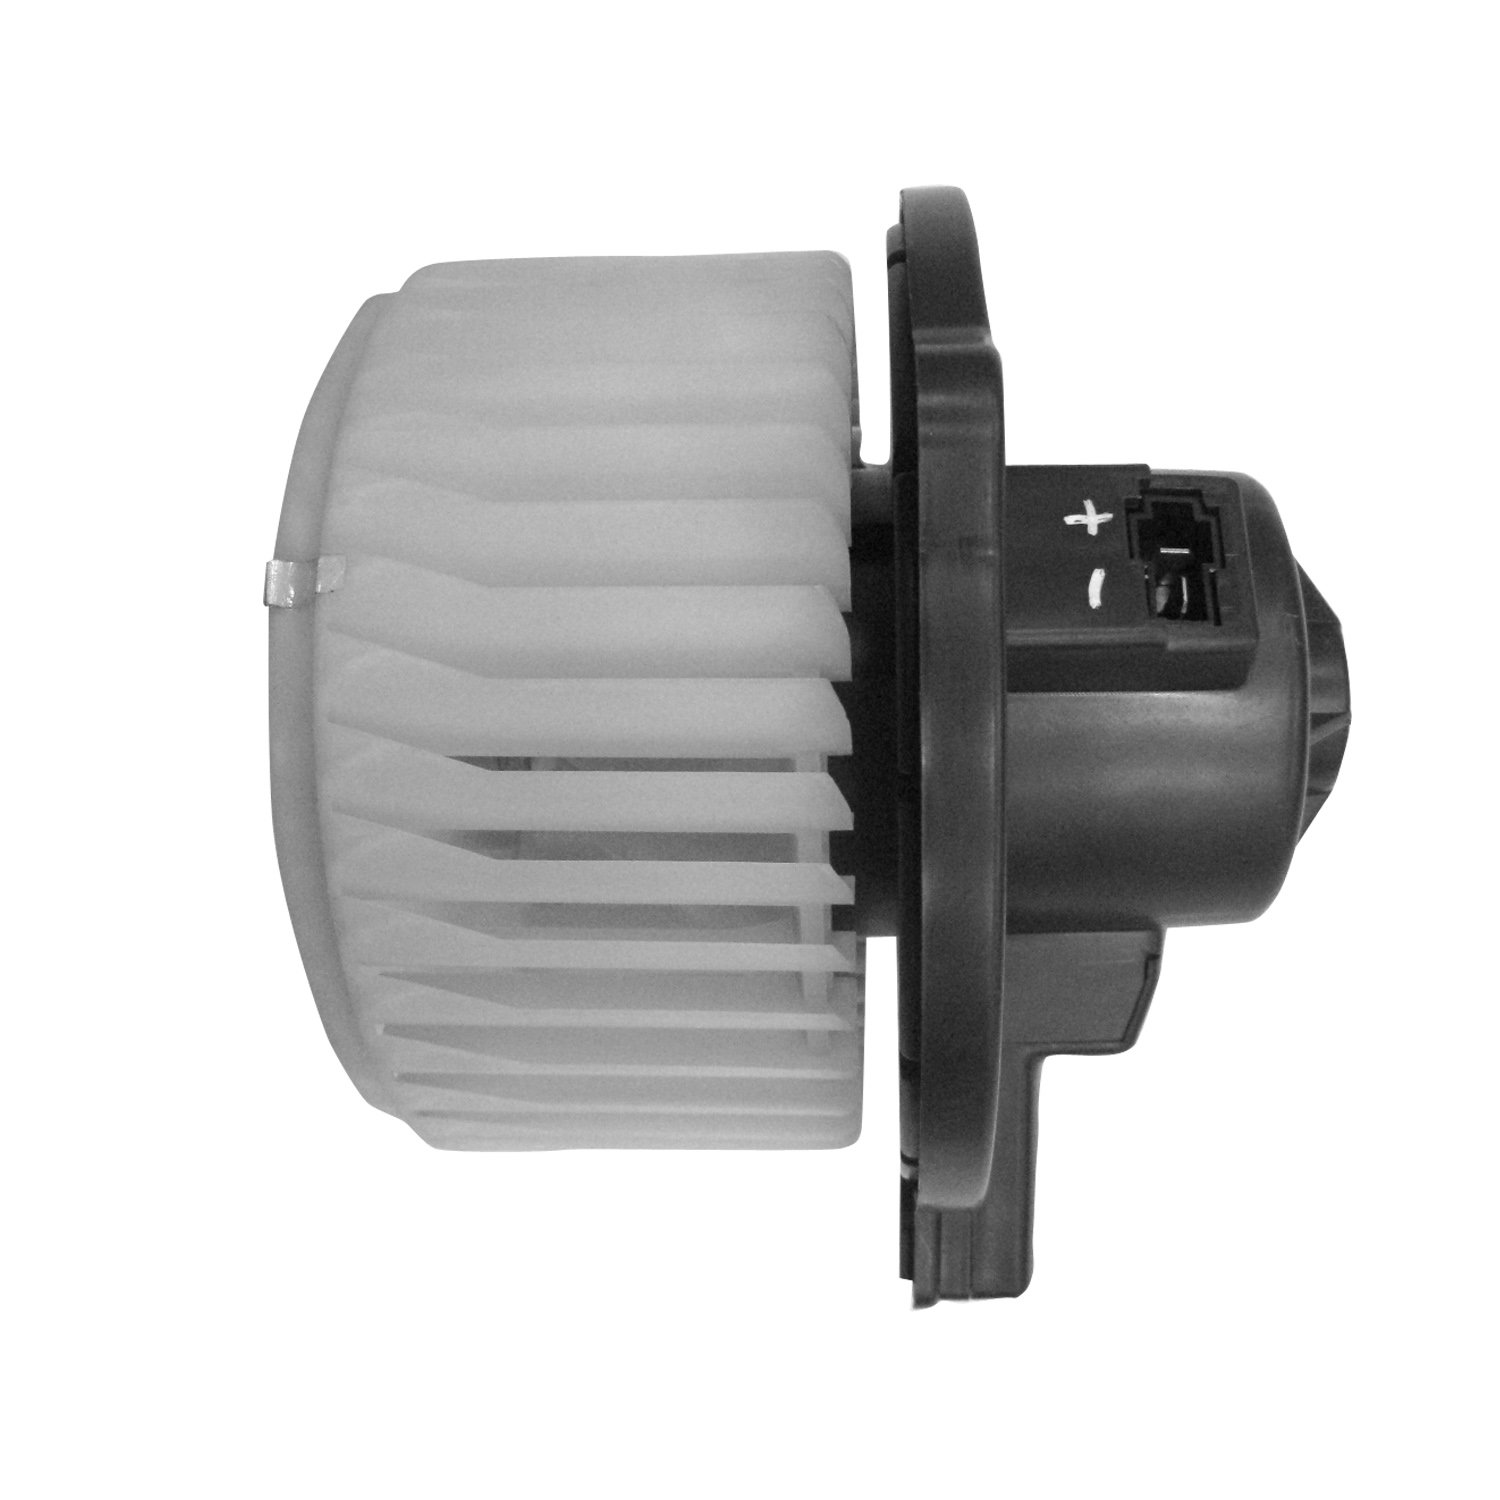 TYC 700229 Replacement Blower Assembly for Kia Rio